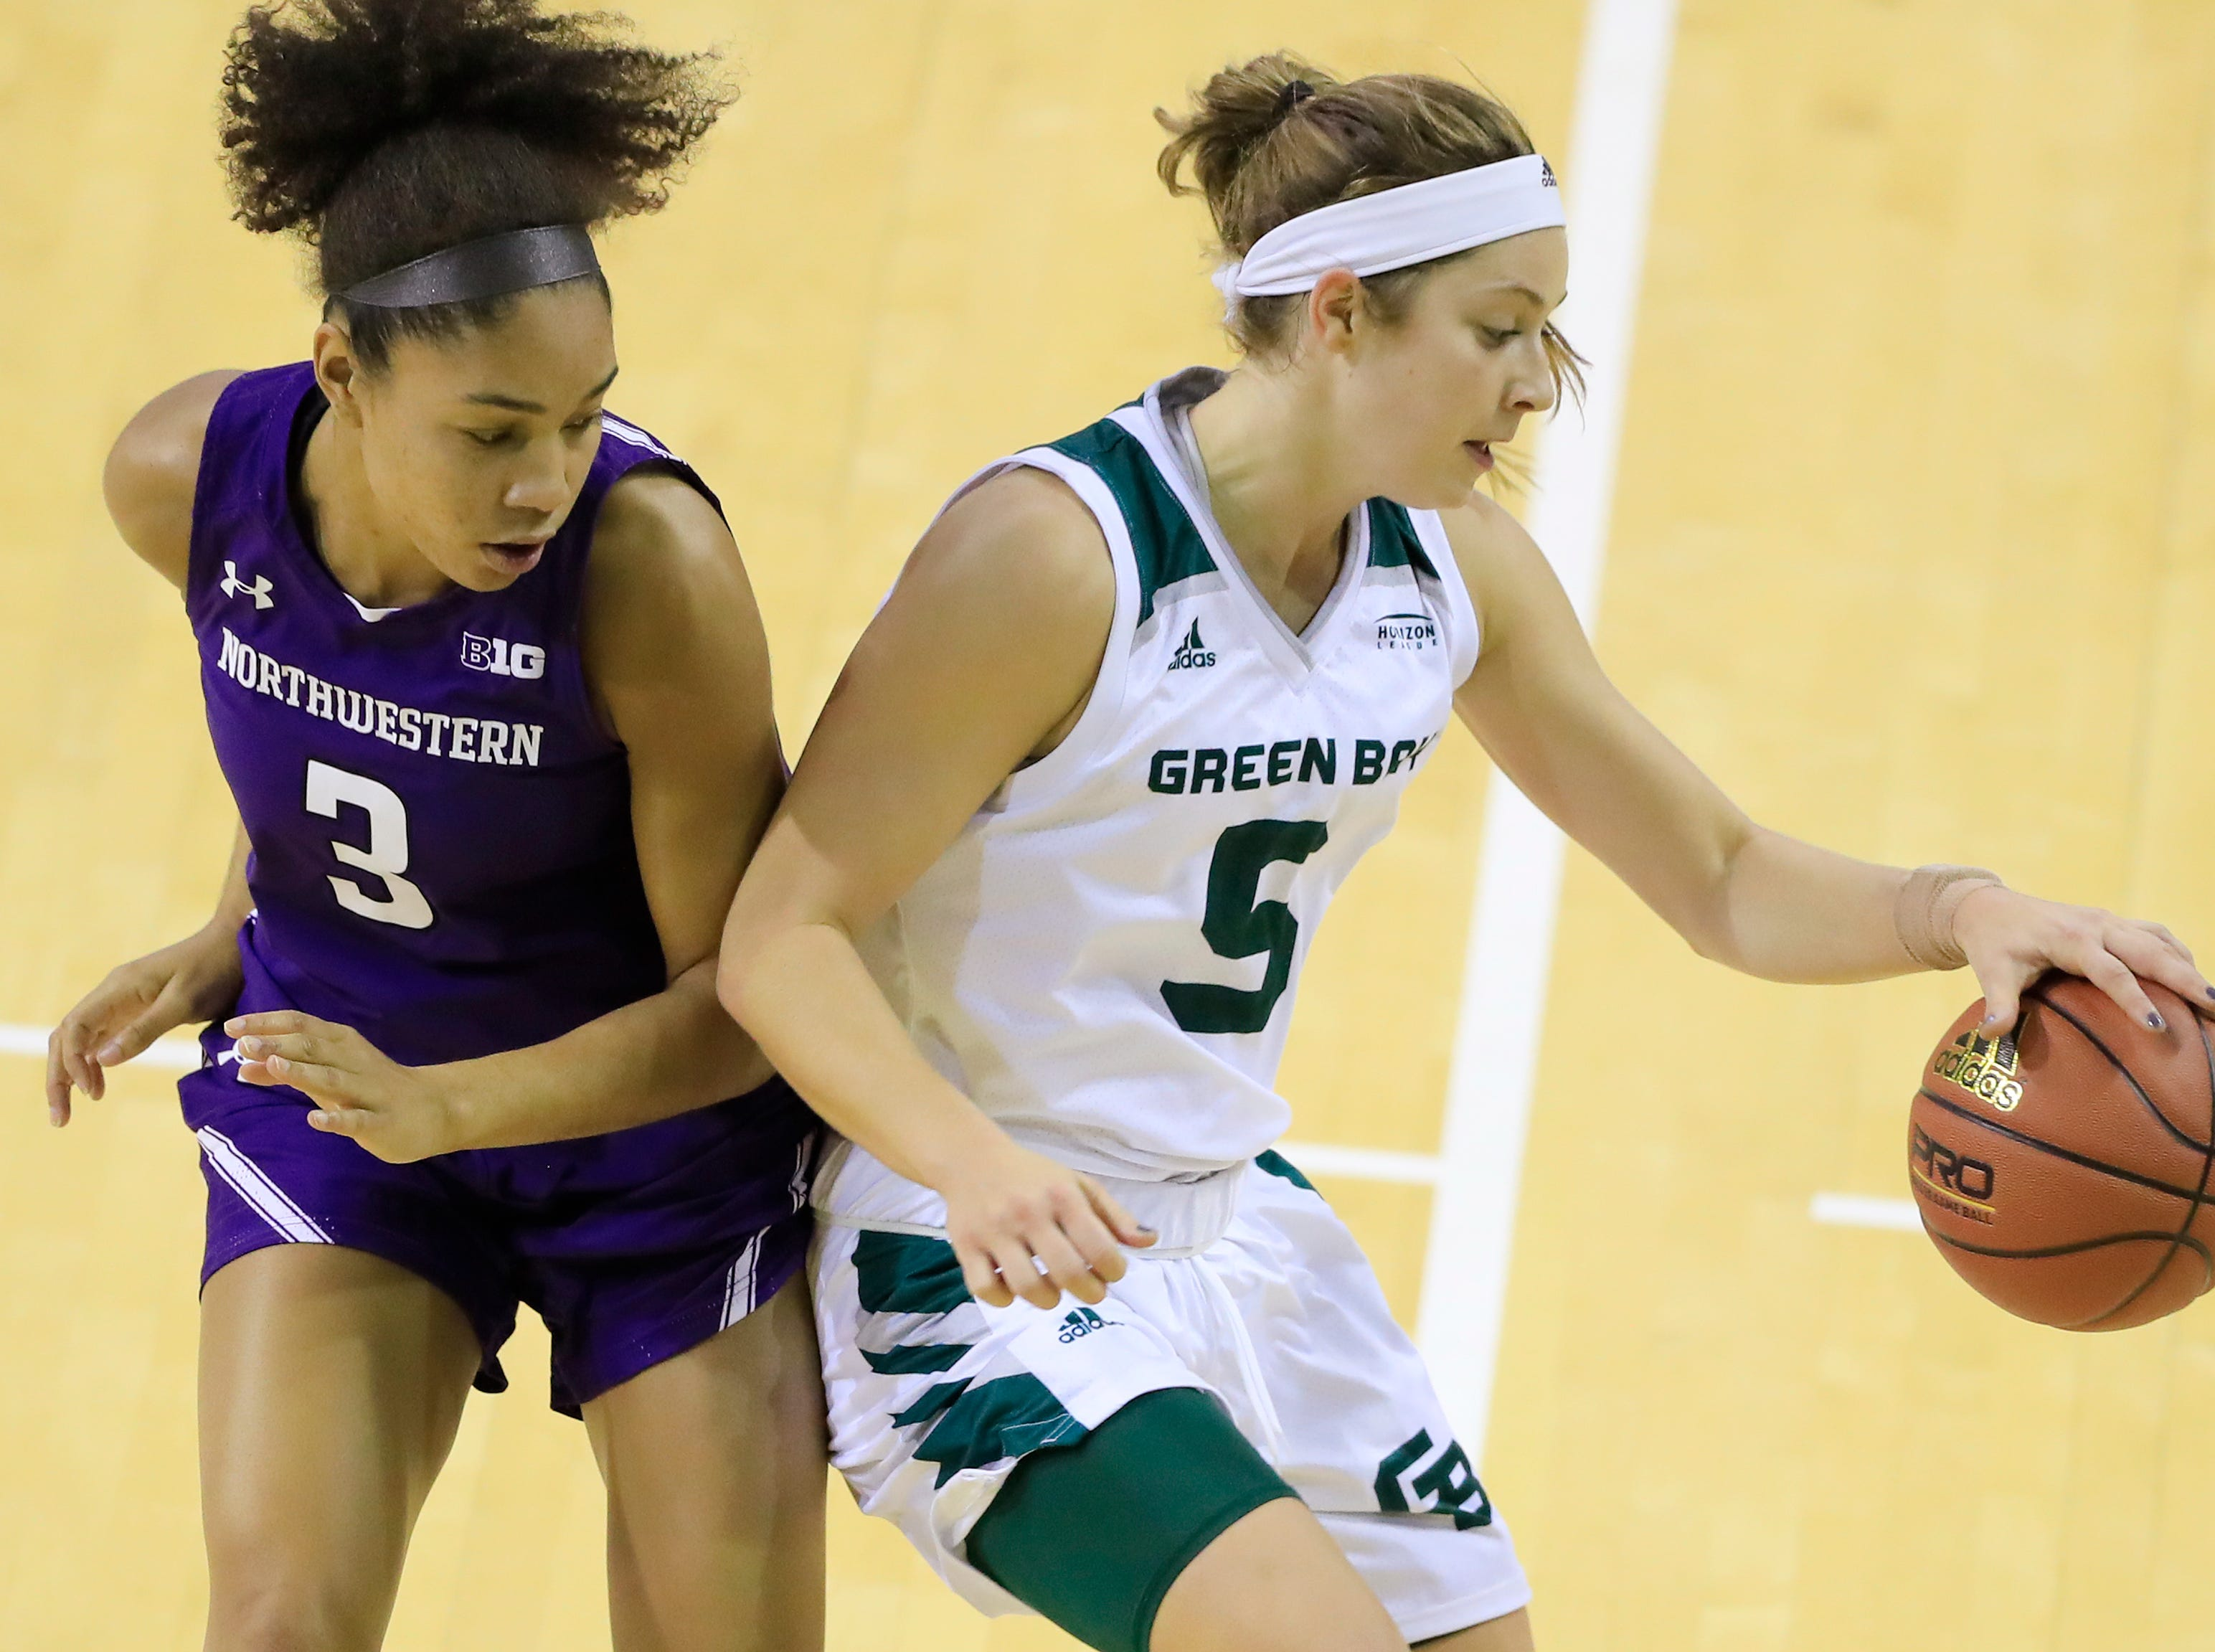 Green Bay Phoenix guard Laken James (5) spins away from Northwestern Wildcats guard Sydney Wood (3) in a women's NCAA basketball game at the Kress Center on Tuesday, November 6, 2018 in Green Bay, Wis.